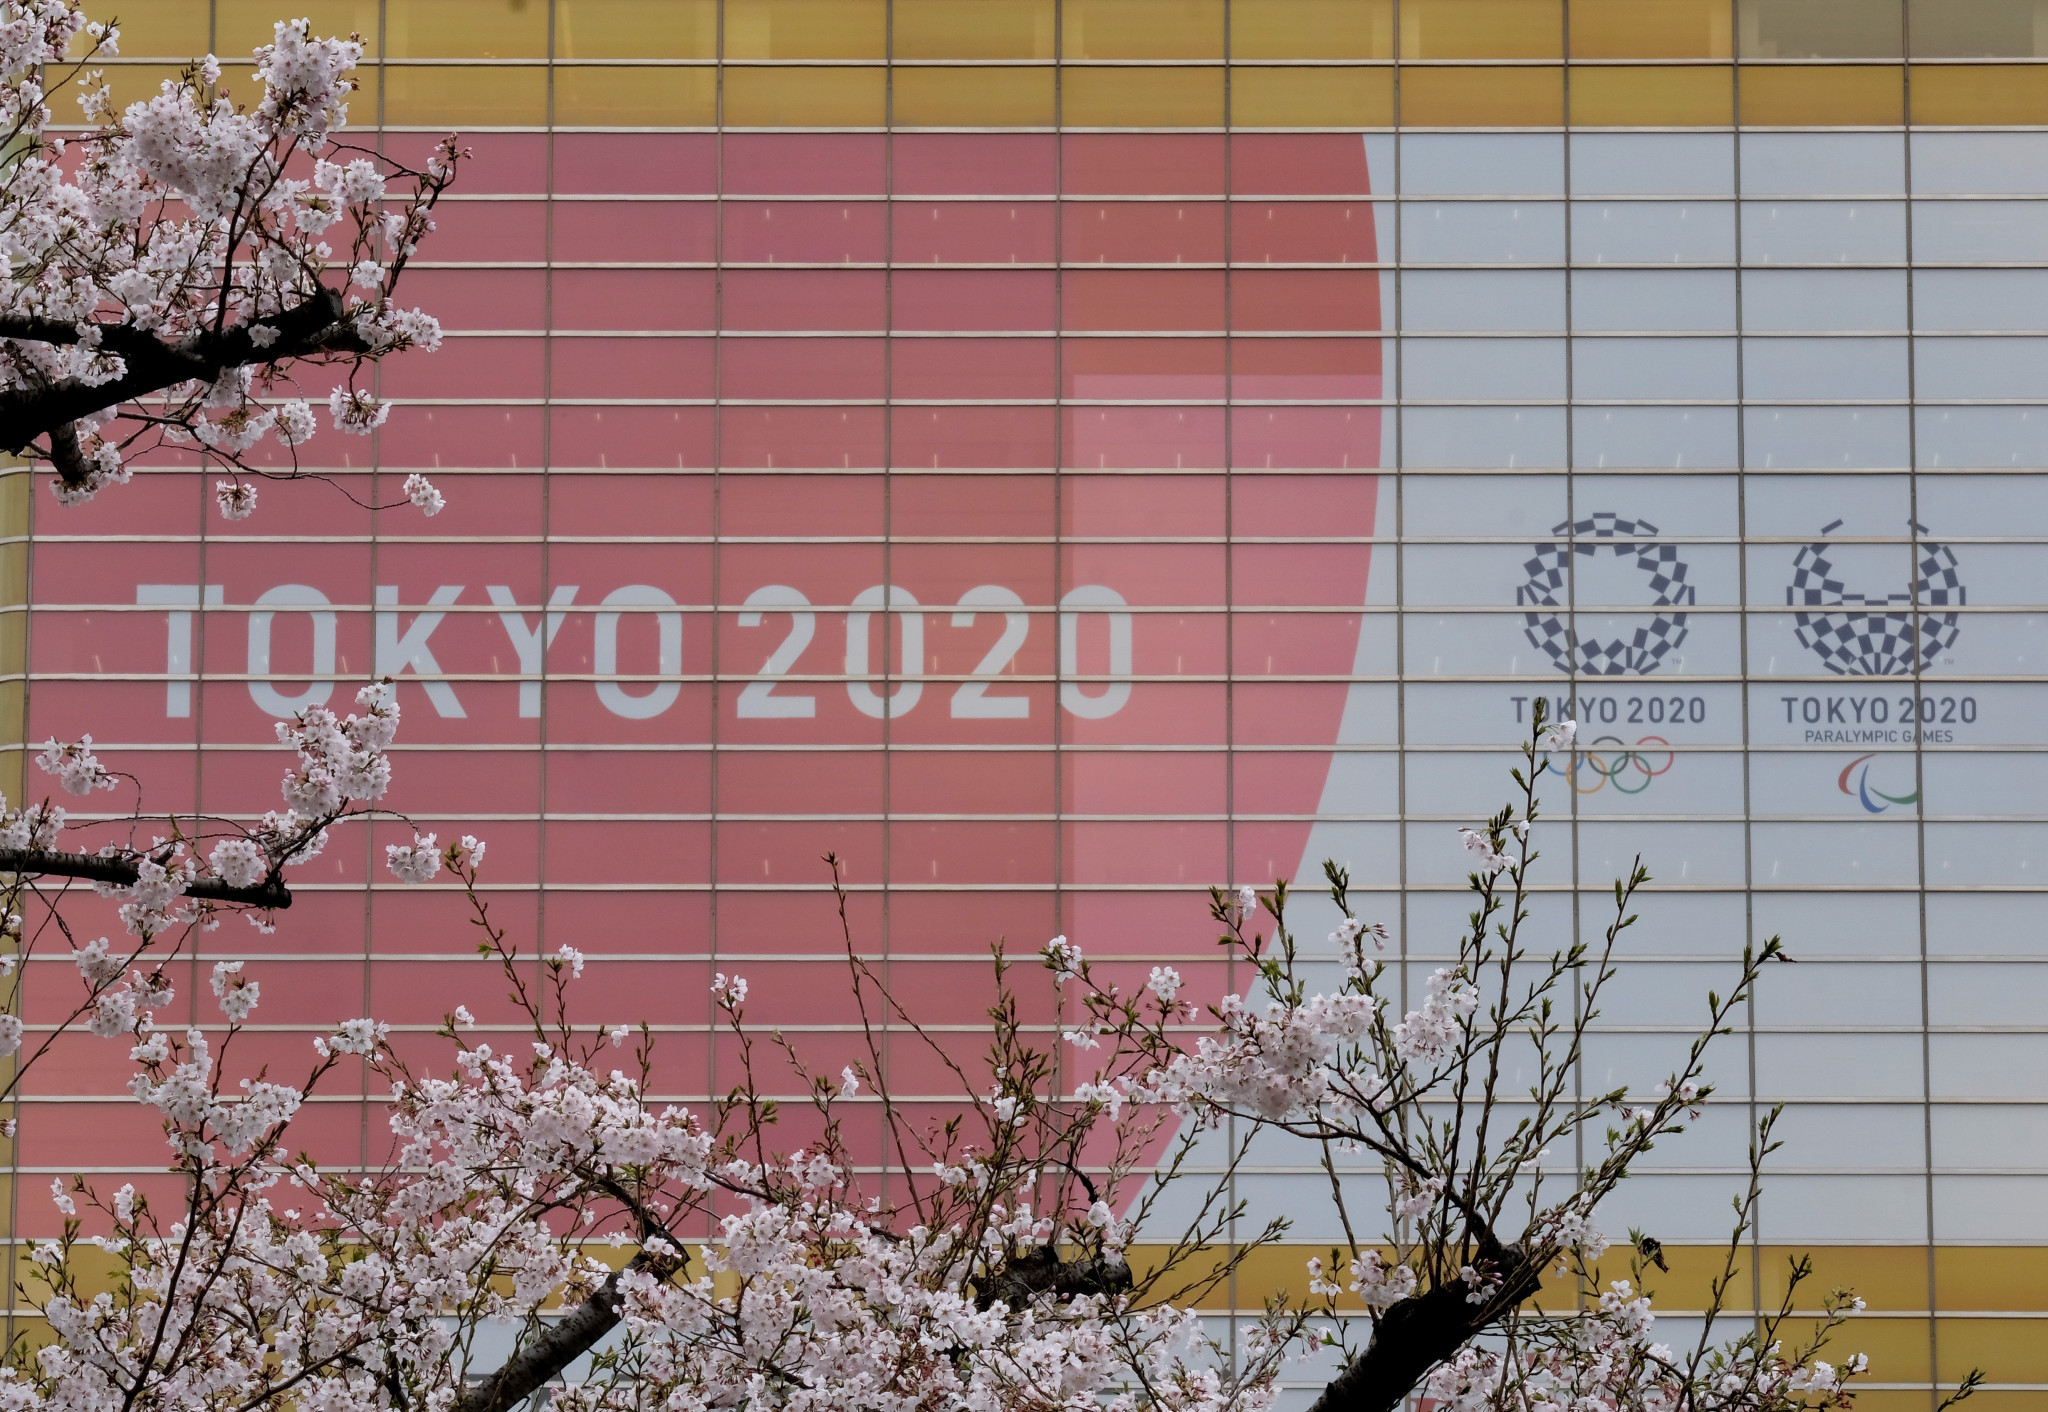 Finality of sanctions and Osaka rule prevent doping ban changes for Tokyo 2020